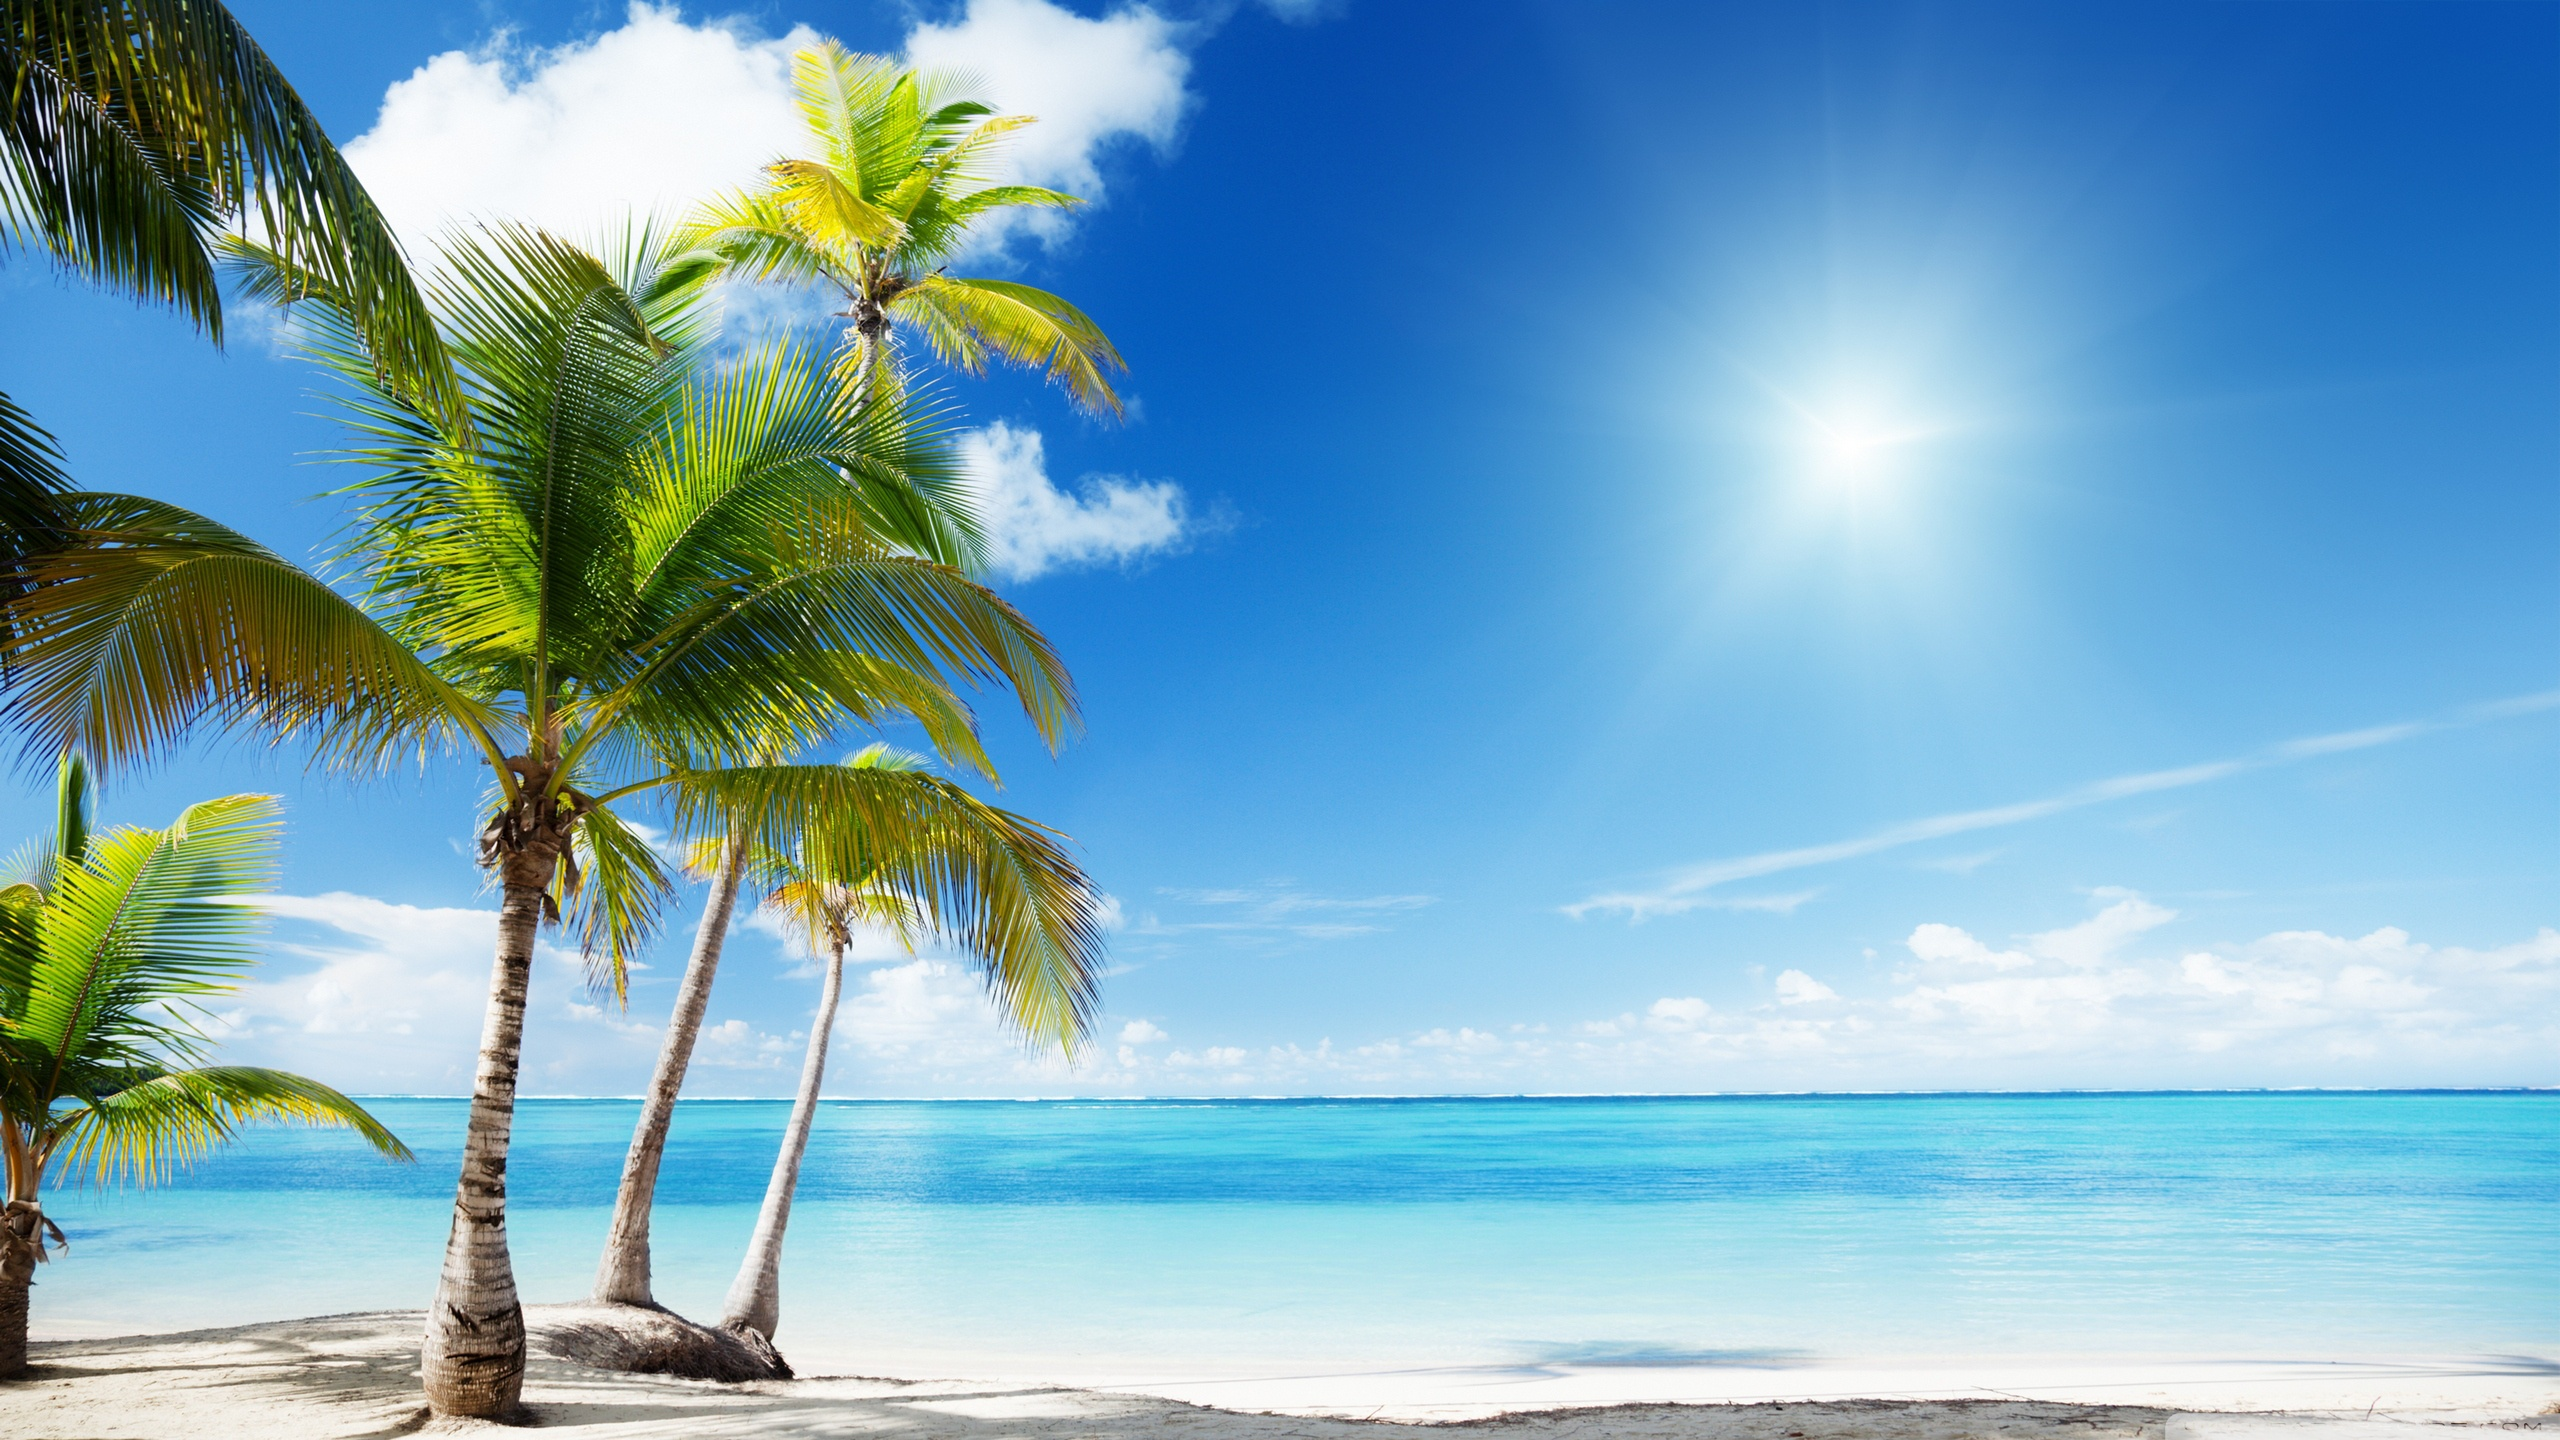 Tropical Beach Wallpapers Full Hd Is Cool Wallpapers